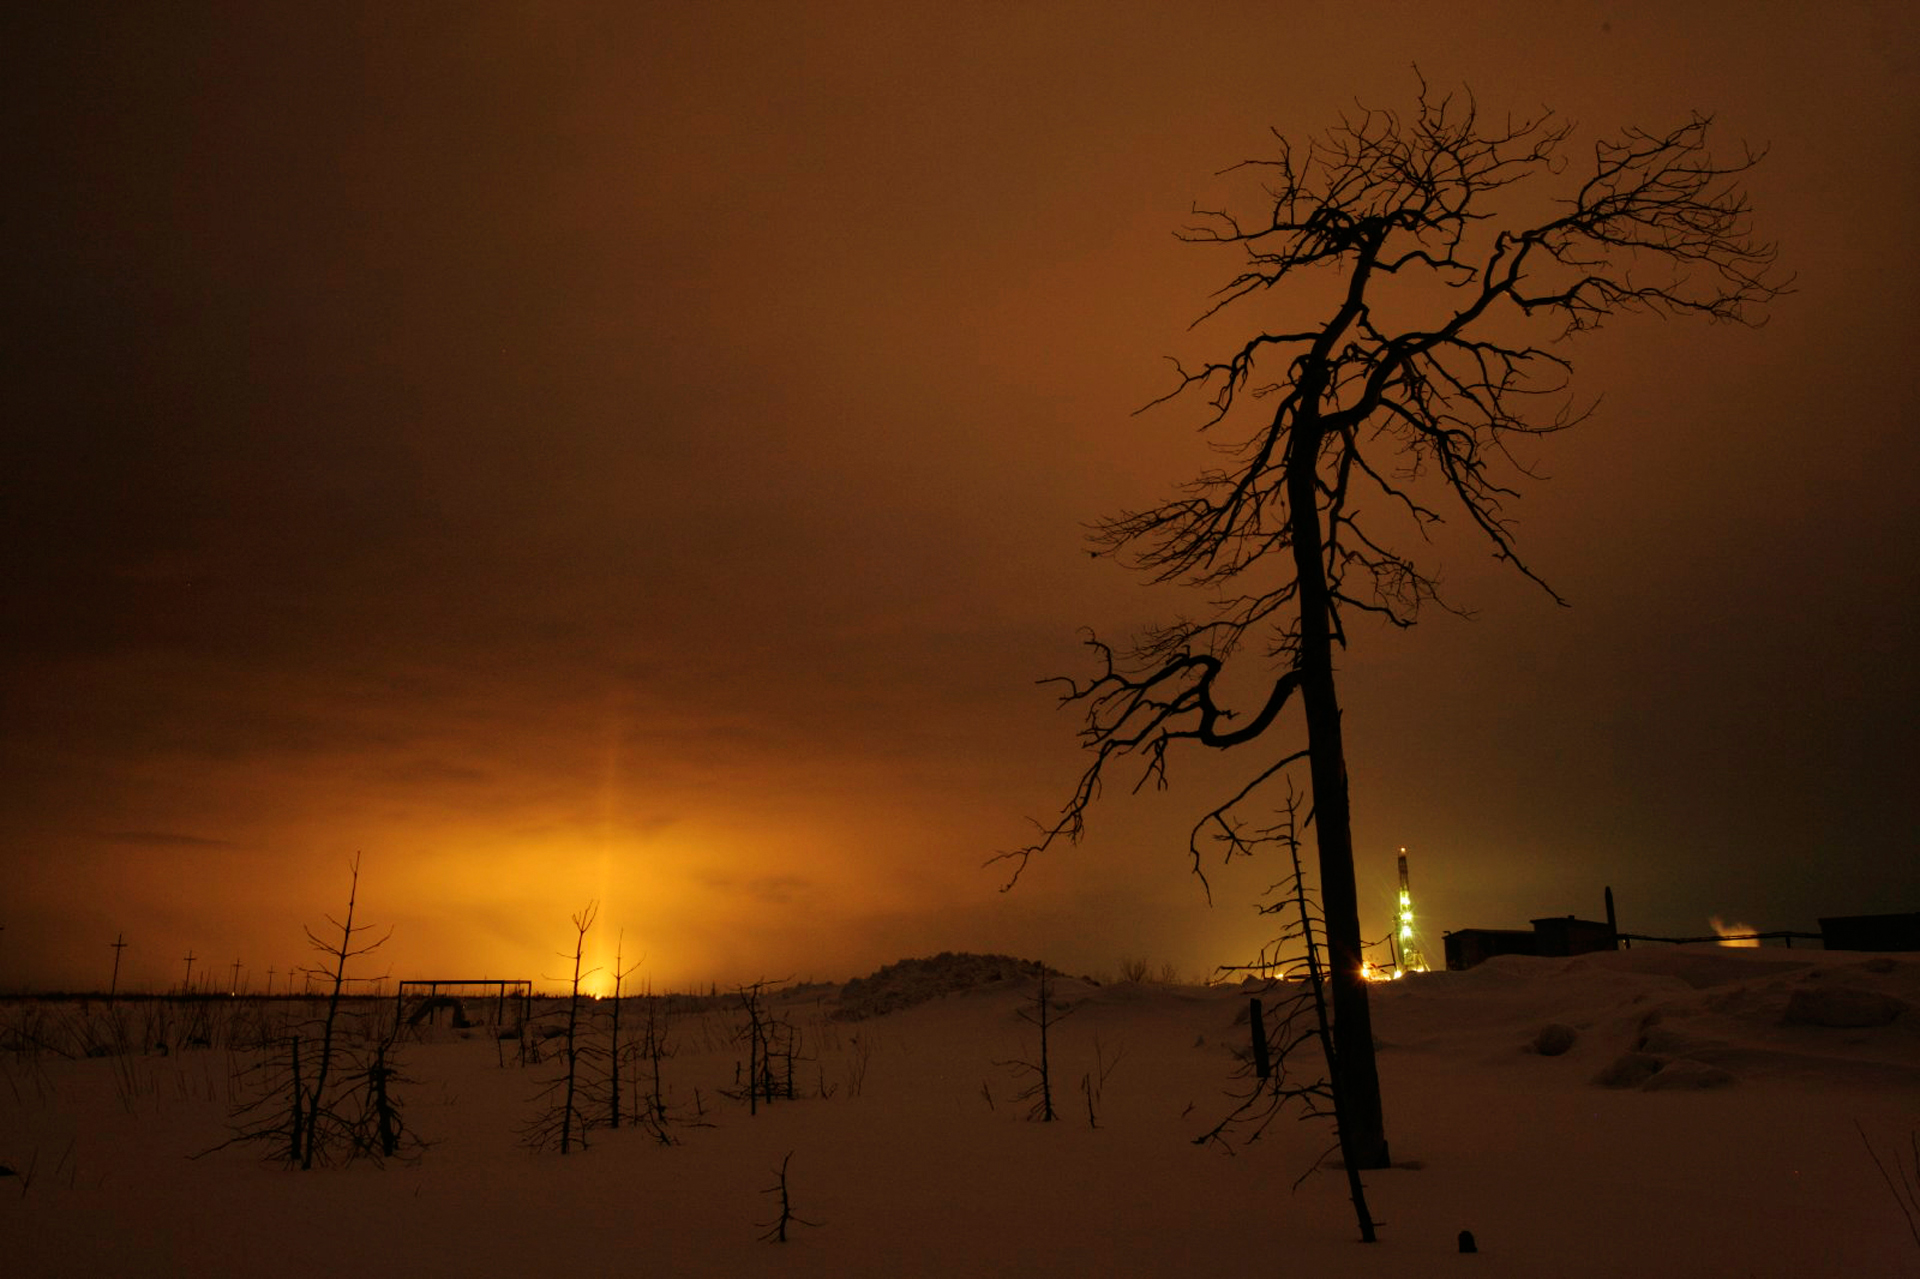 Gas flares and rig lights sear the night sky. Russia is now the world's top producer of crude oil.  Savuiskoye oil field, Russia